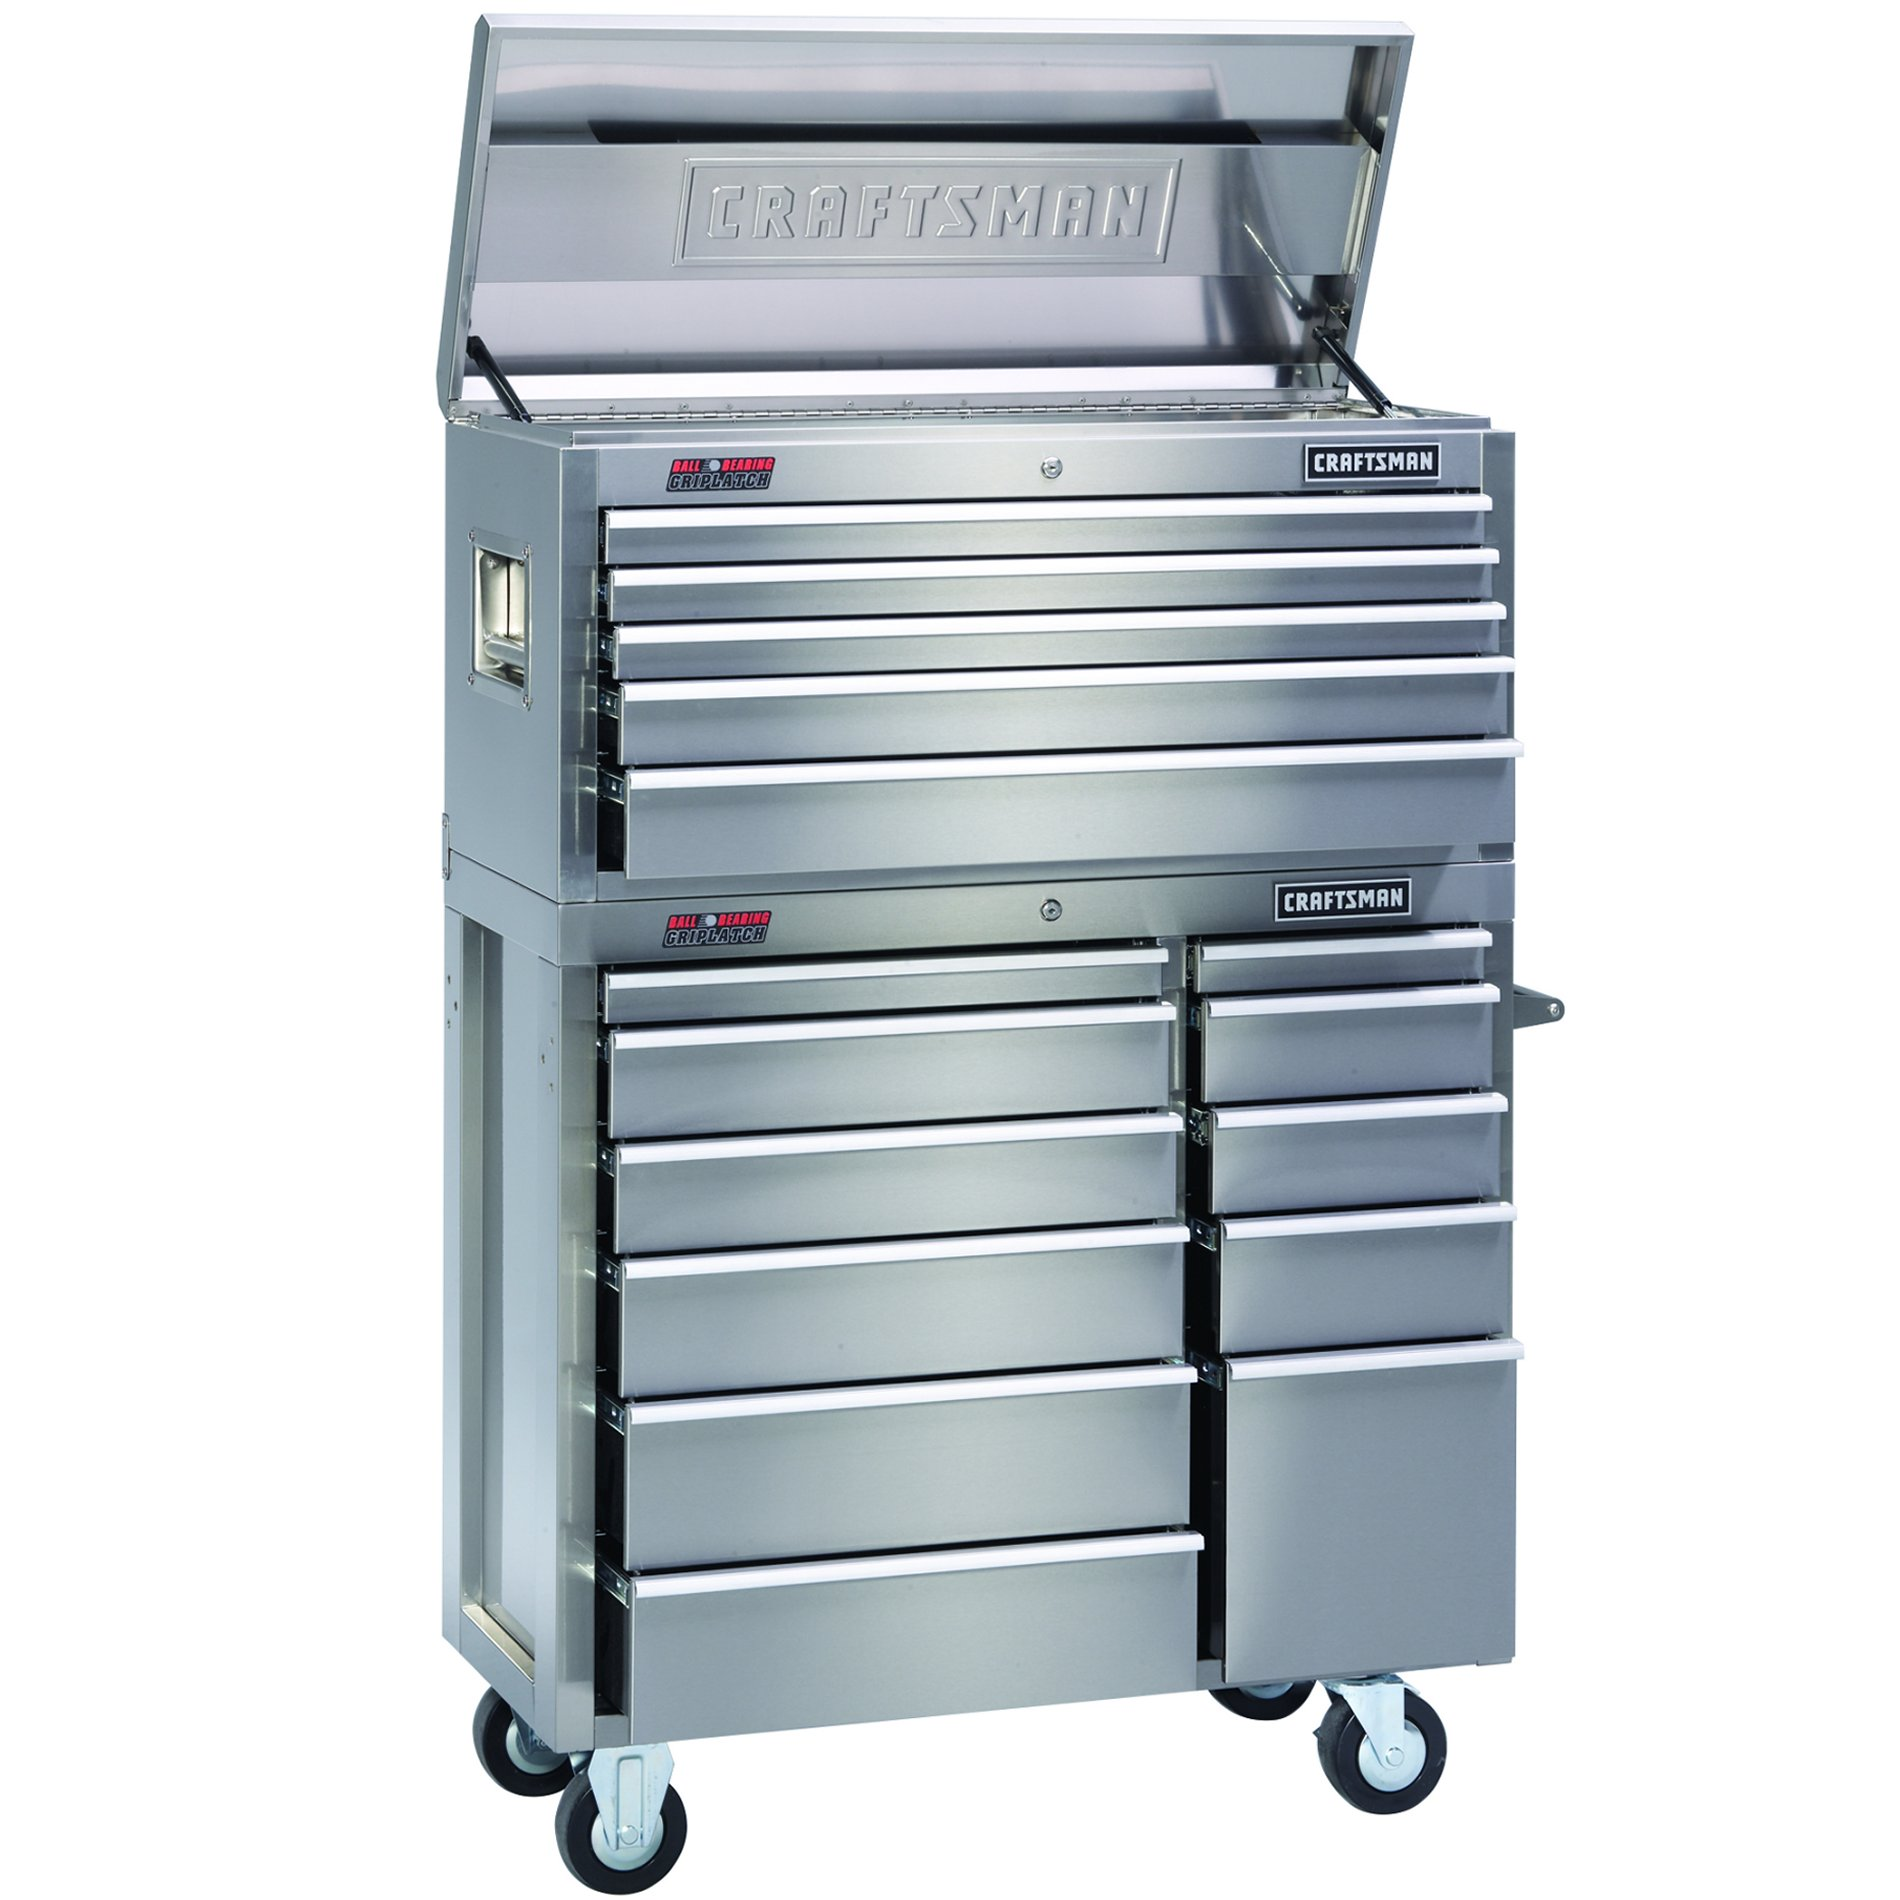 Craftsman-41 in. Storage Combo, Stainless Steel - Each Item Sold Separately